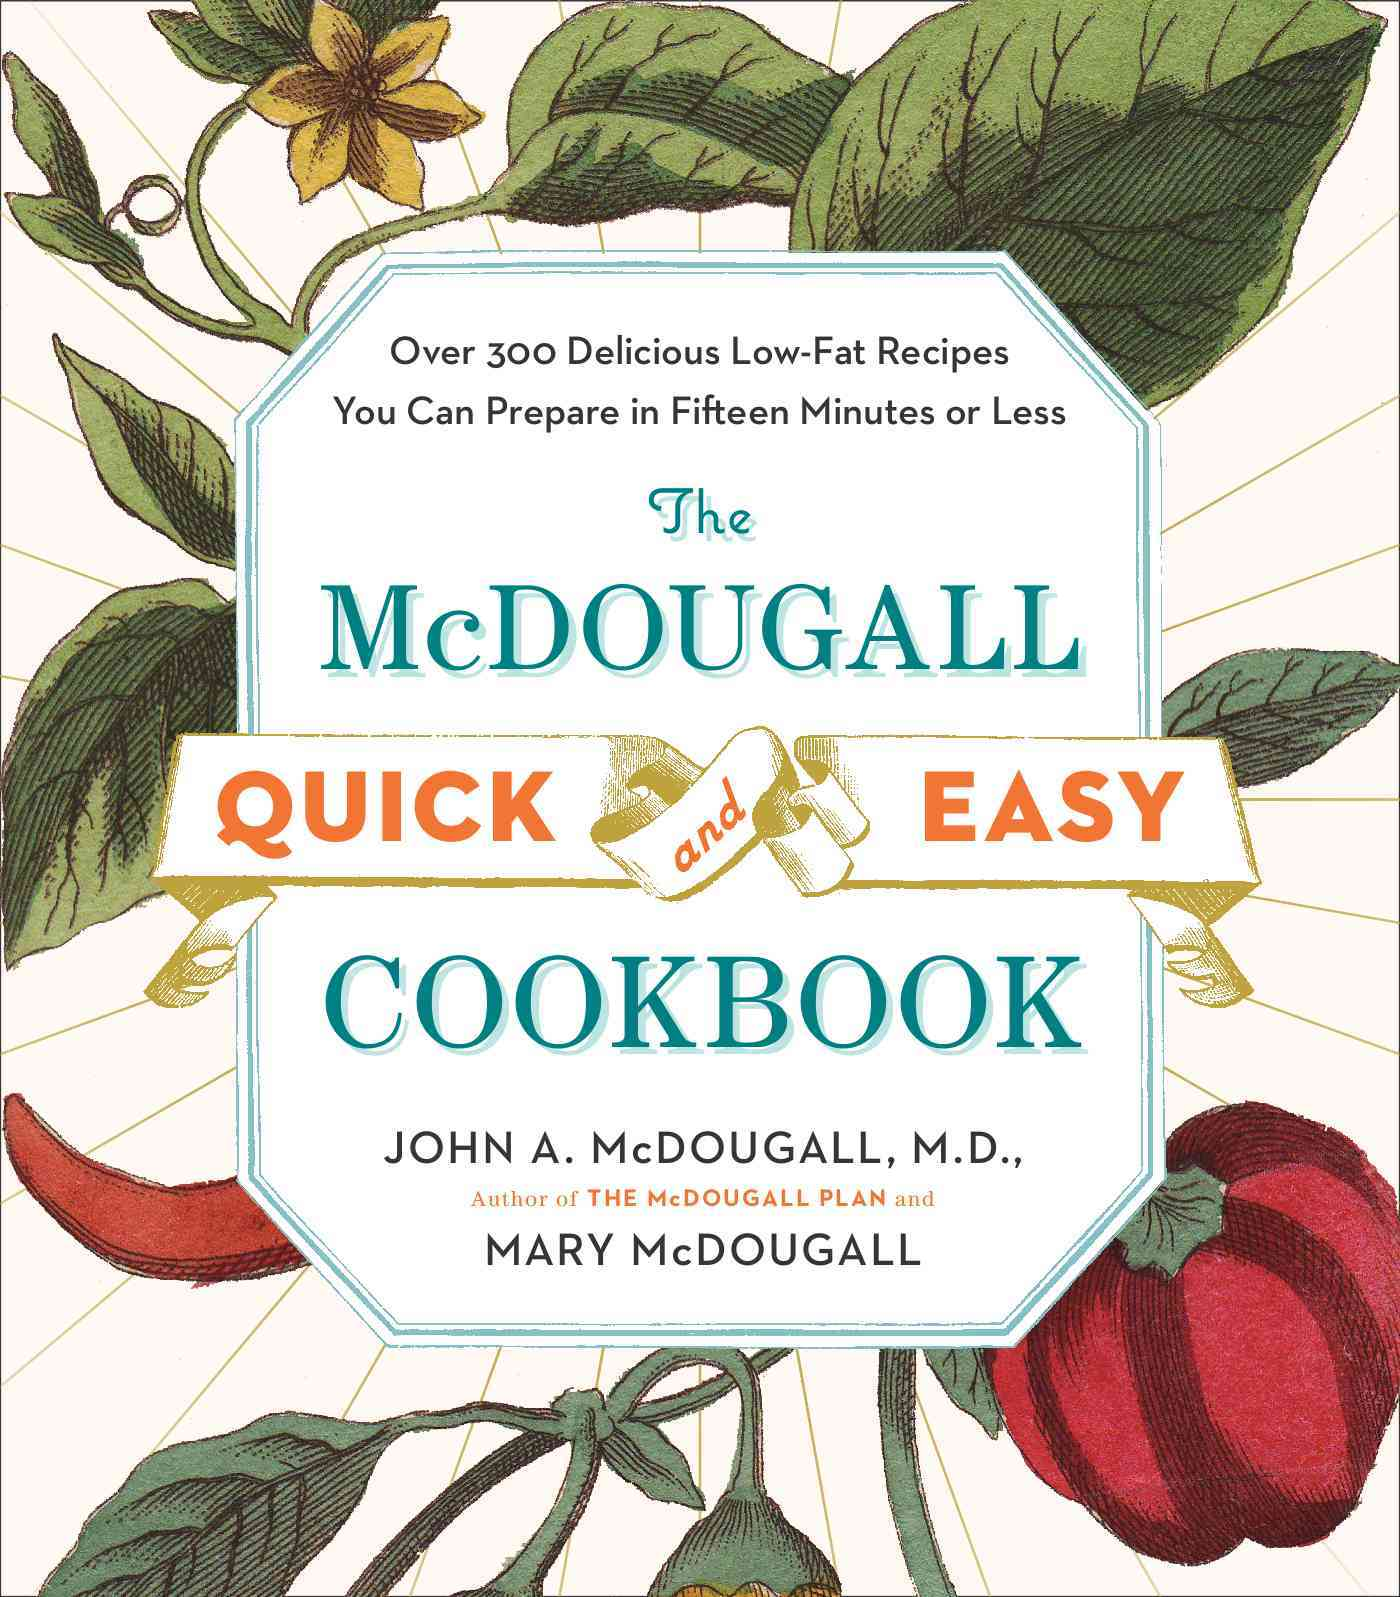 The McDougall Quick & Easy Cookbook: Over 300 Delicious Low-Fat Recipes You Can Prepare in Fifteen Minutes or Less (Paperback)